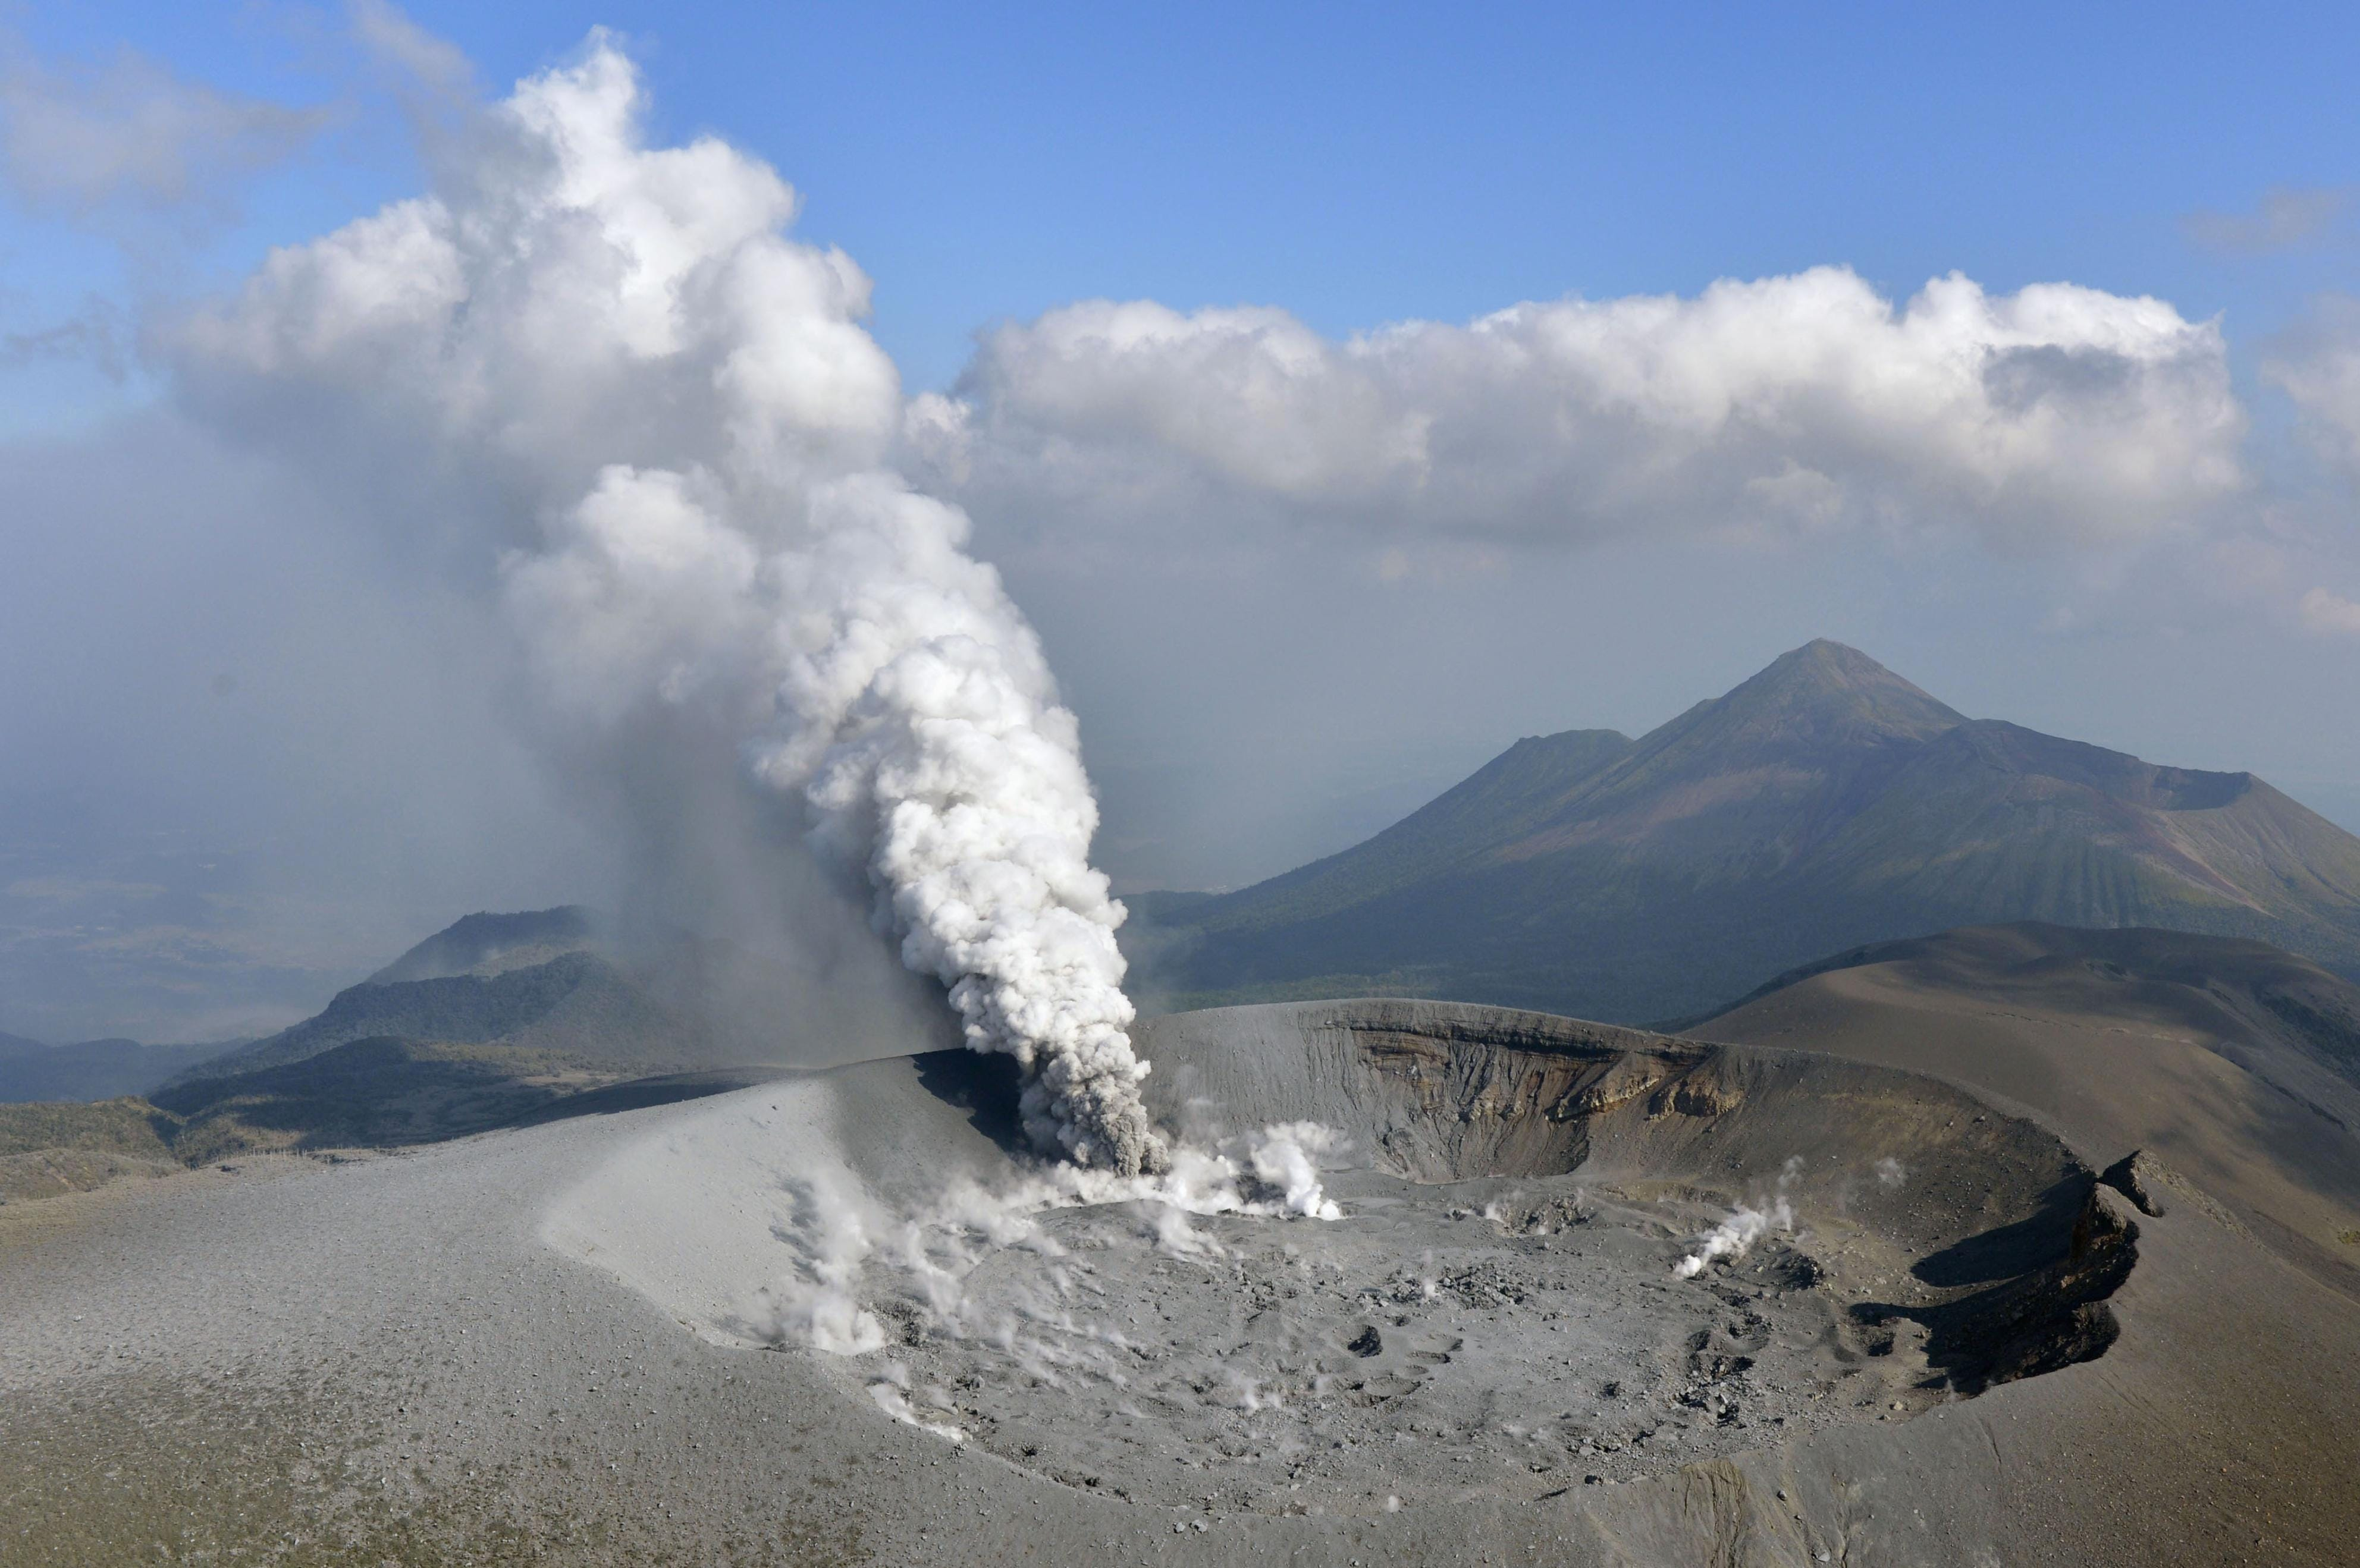 Volcanic eruption in Japan spreads ash in cities, towns